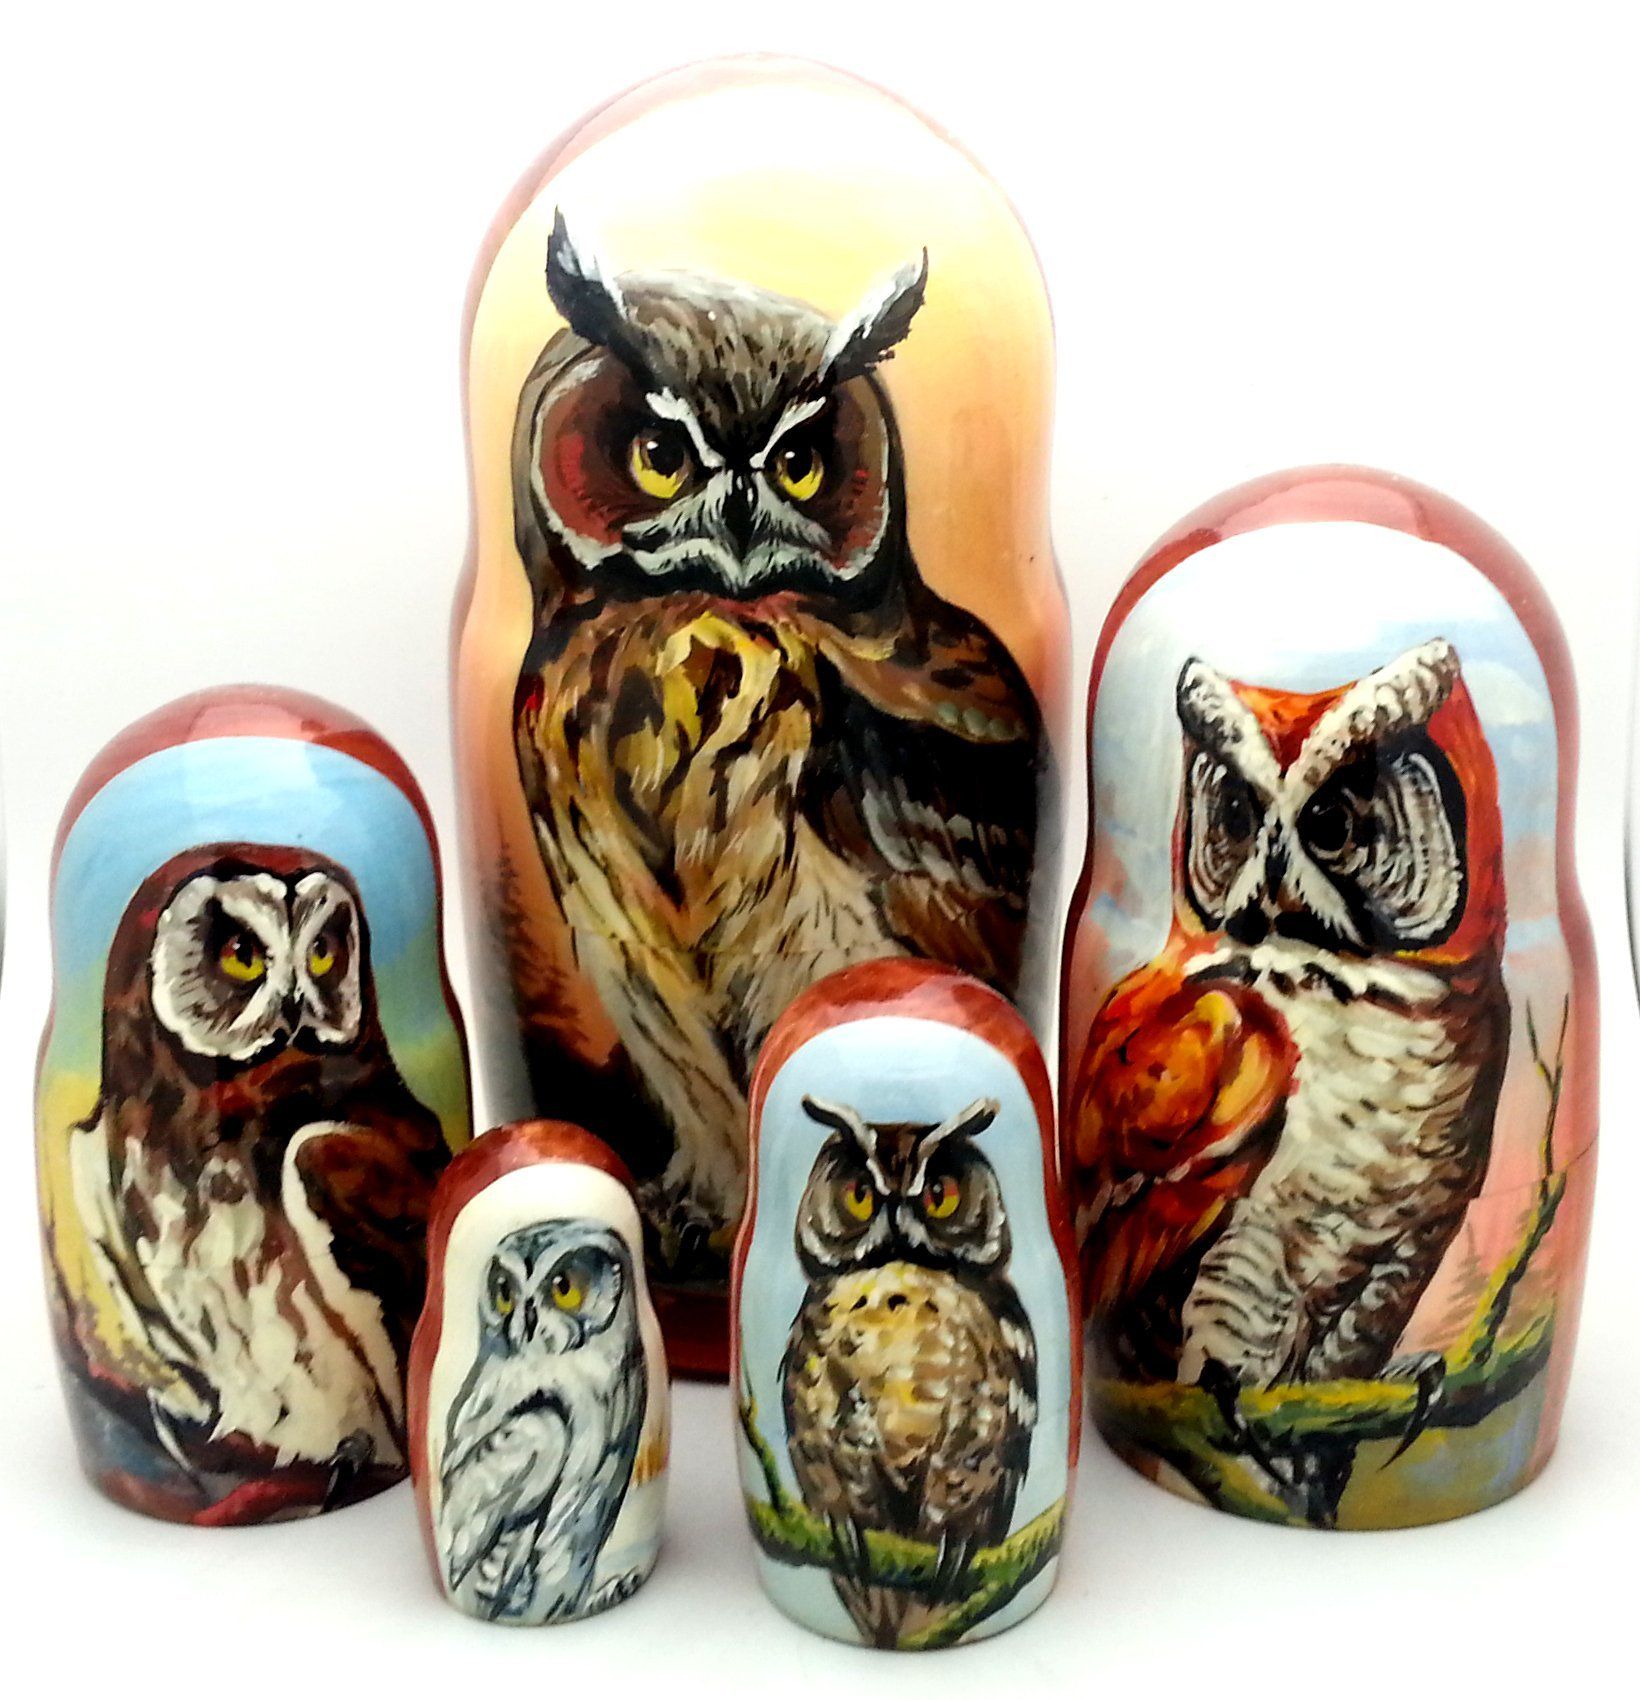 OWL nesting dolls Russian Hand Carved Hand Painted 5 piece matryoshka doll Set / 7''H